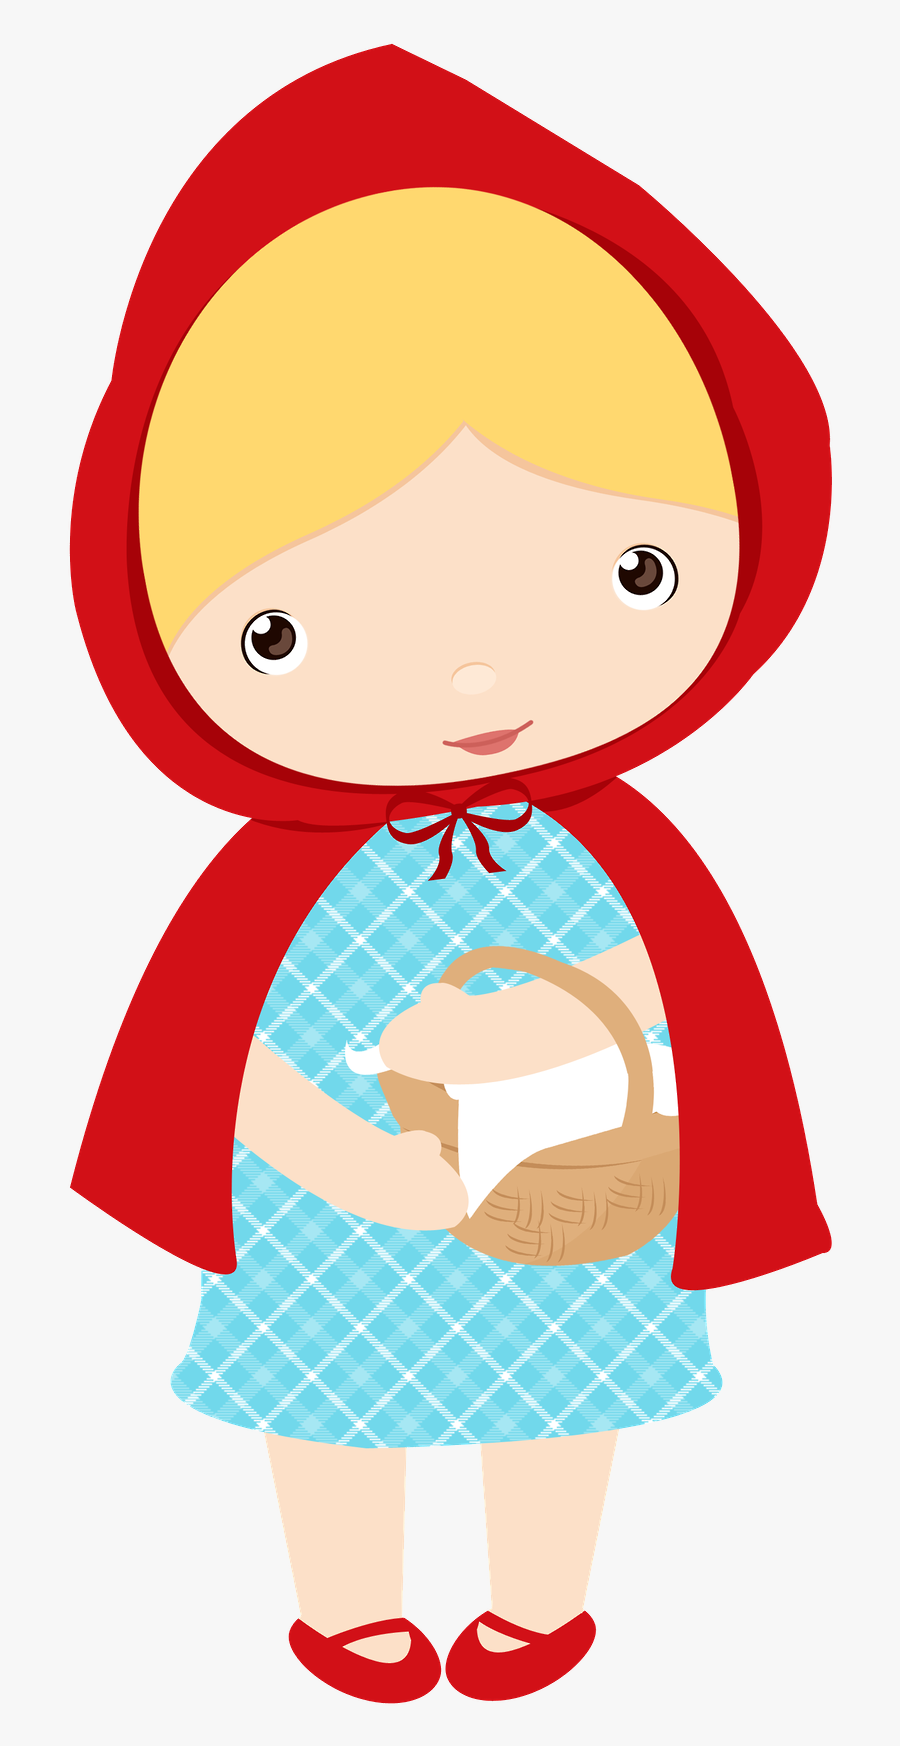 Minus Red Riding Hood, Little Red Ridding Hood, Silhouette - Little Red Riding Hood Transparent Background, Transparent Clipart